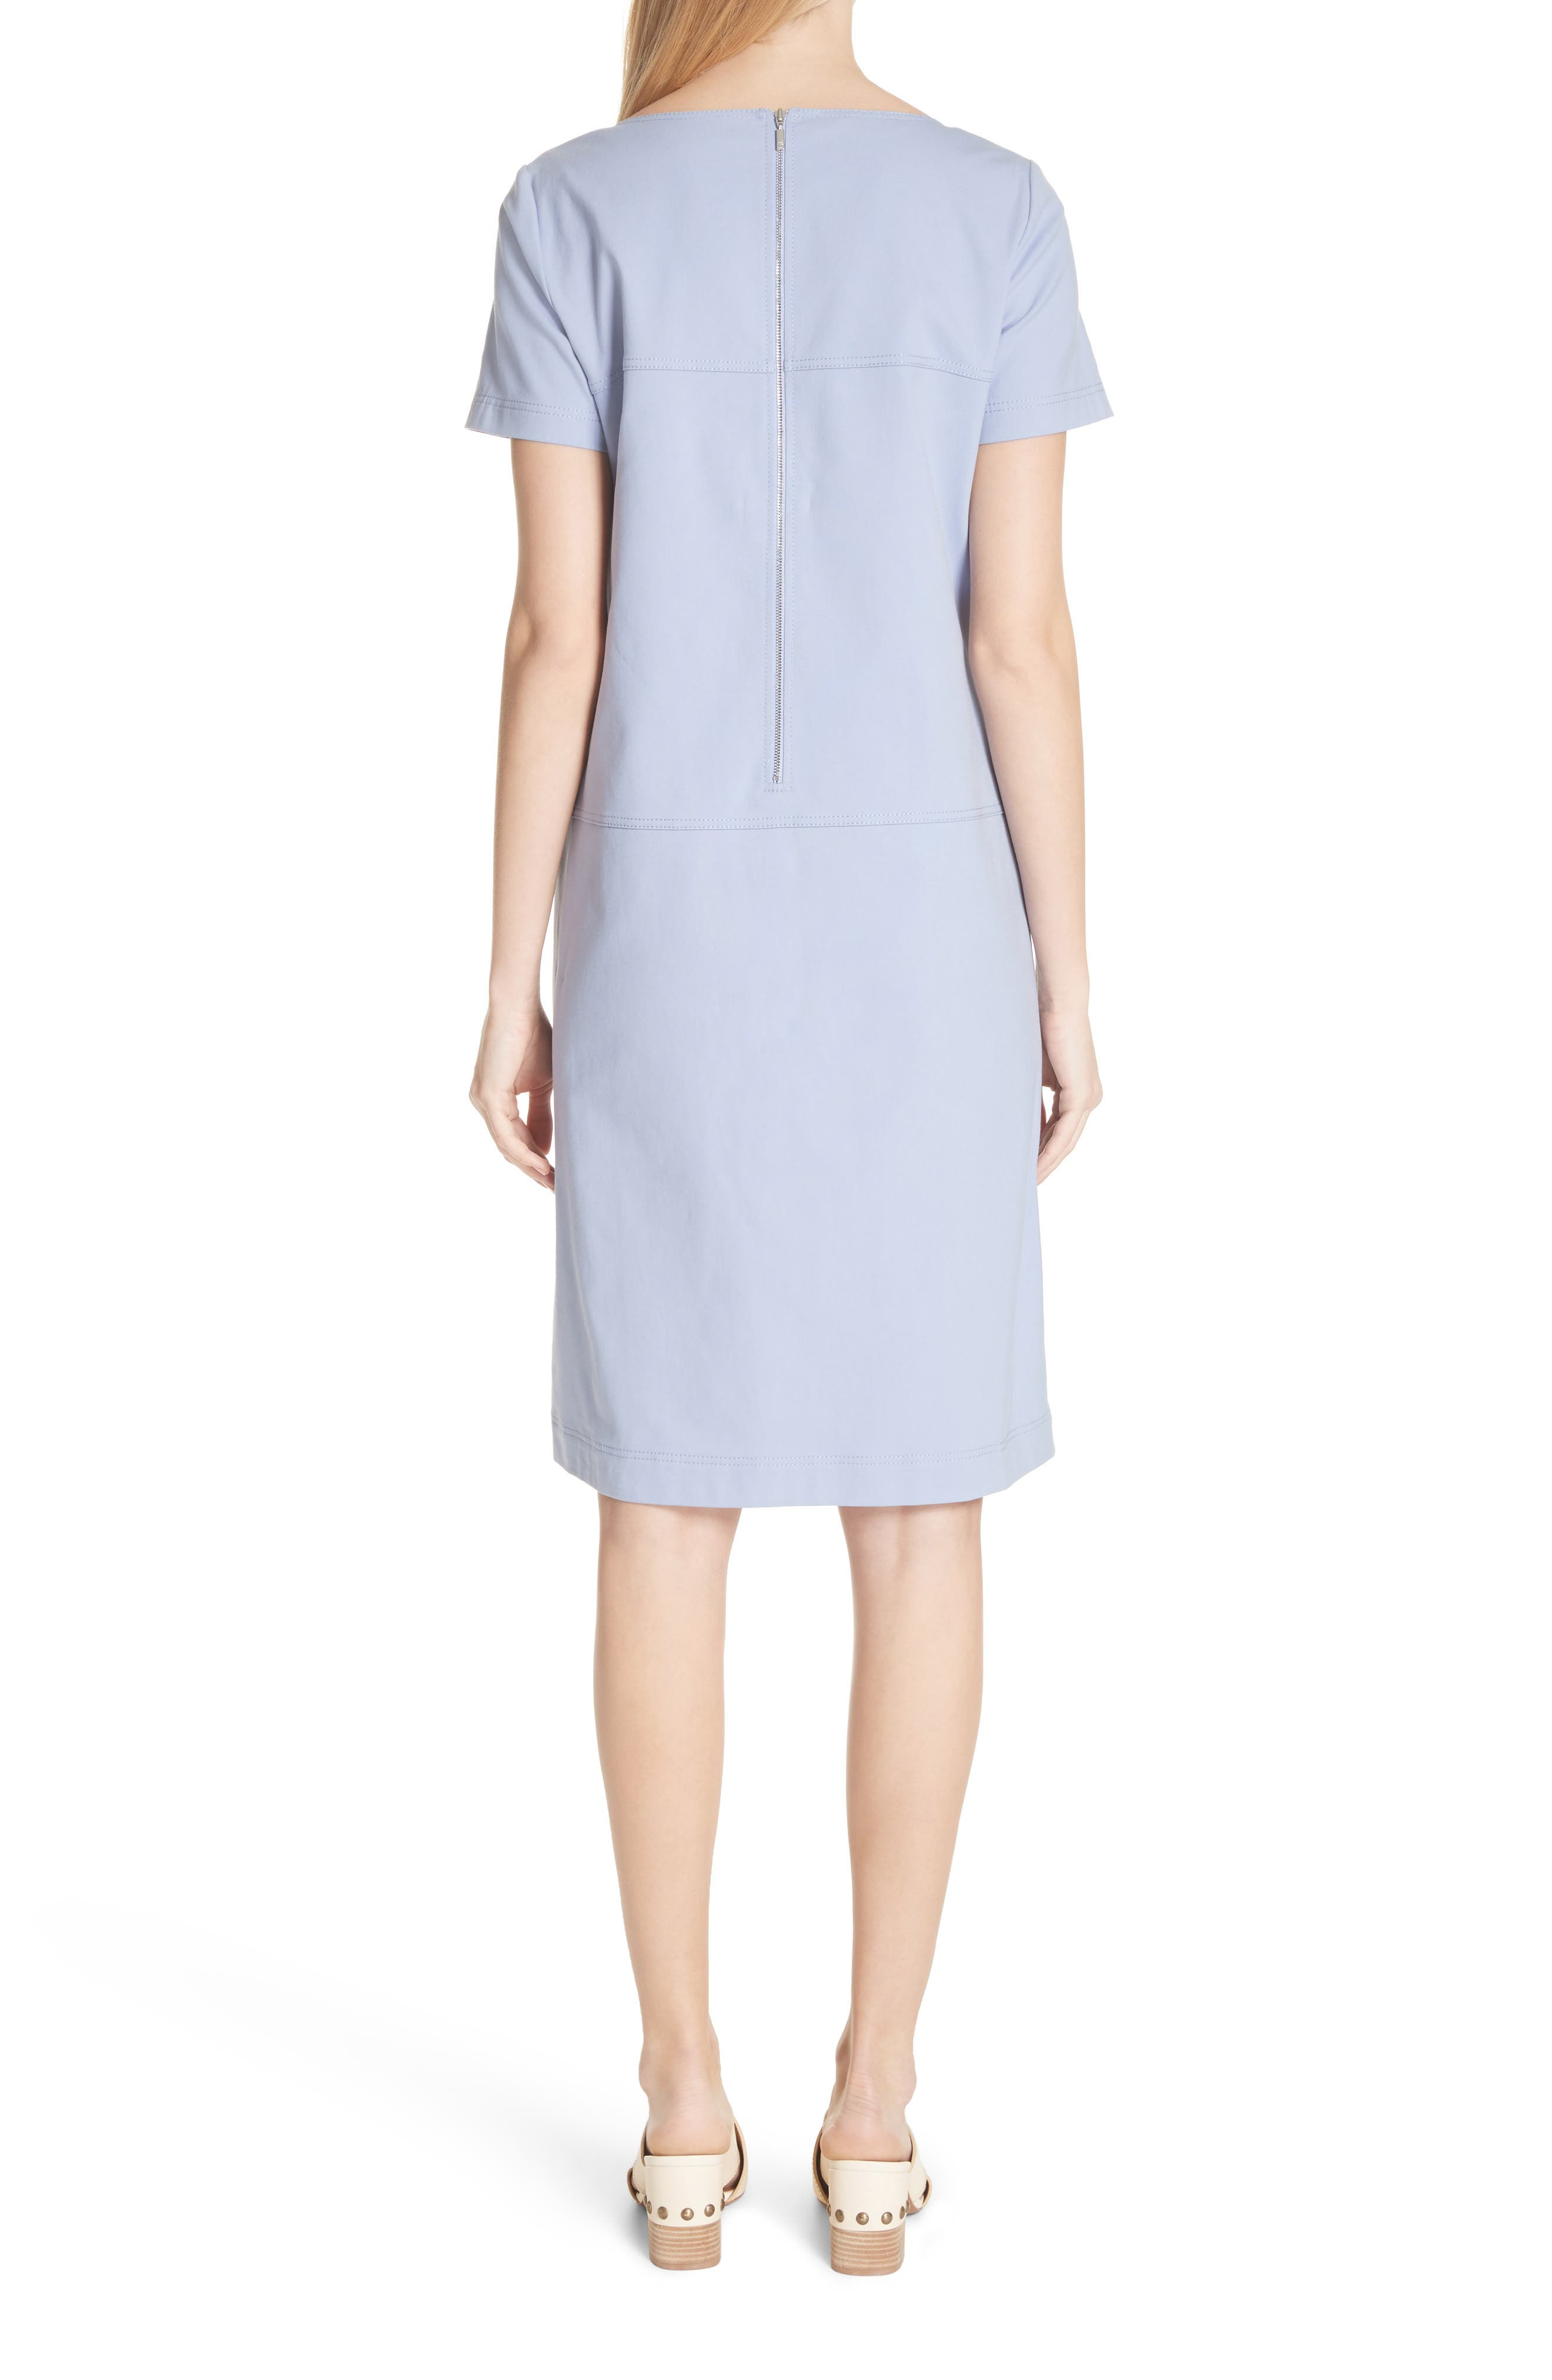 Farah Catalina Stretch Canvas Dress,                             Alternate thumbnail 2, color,                             438